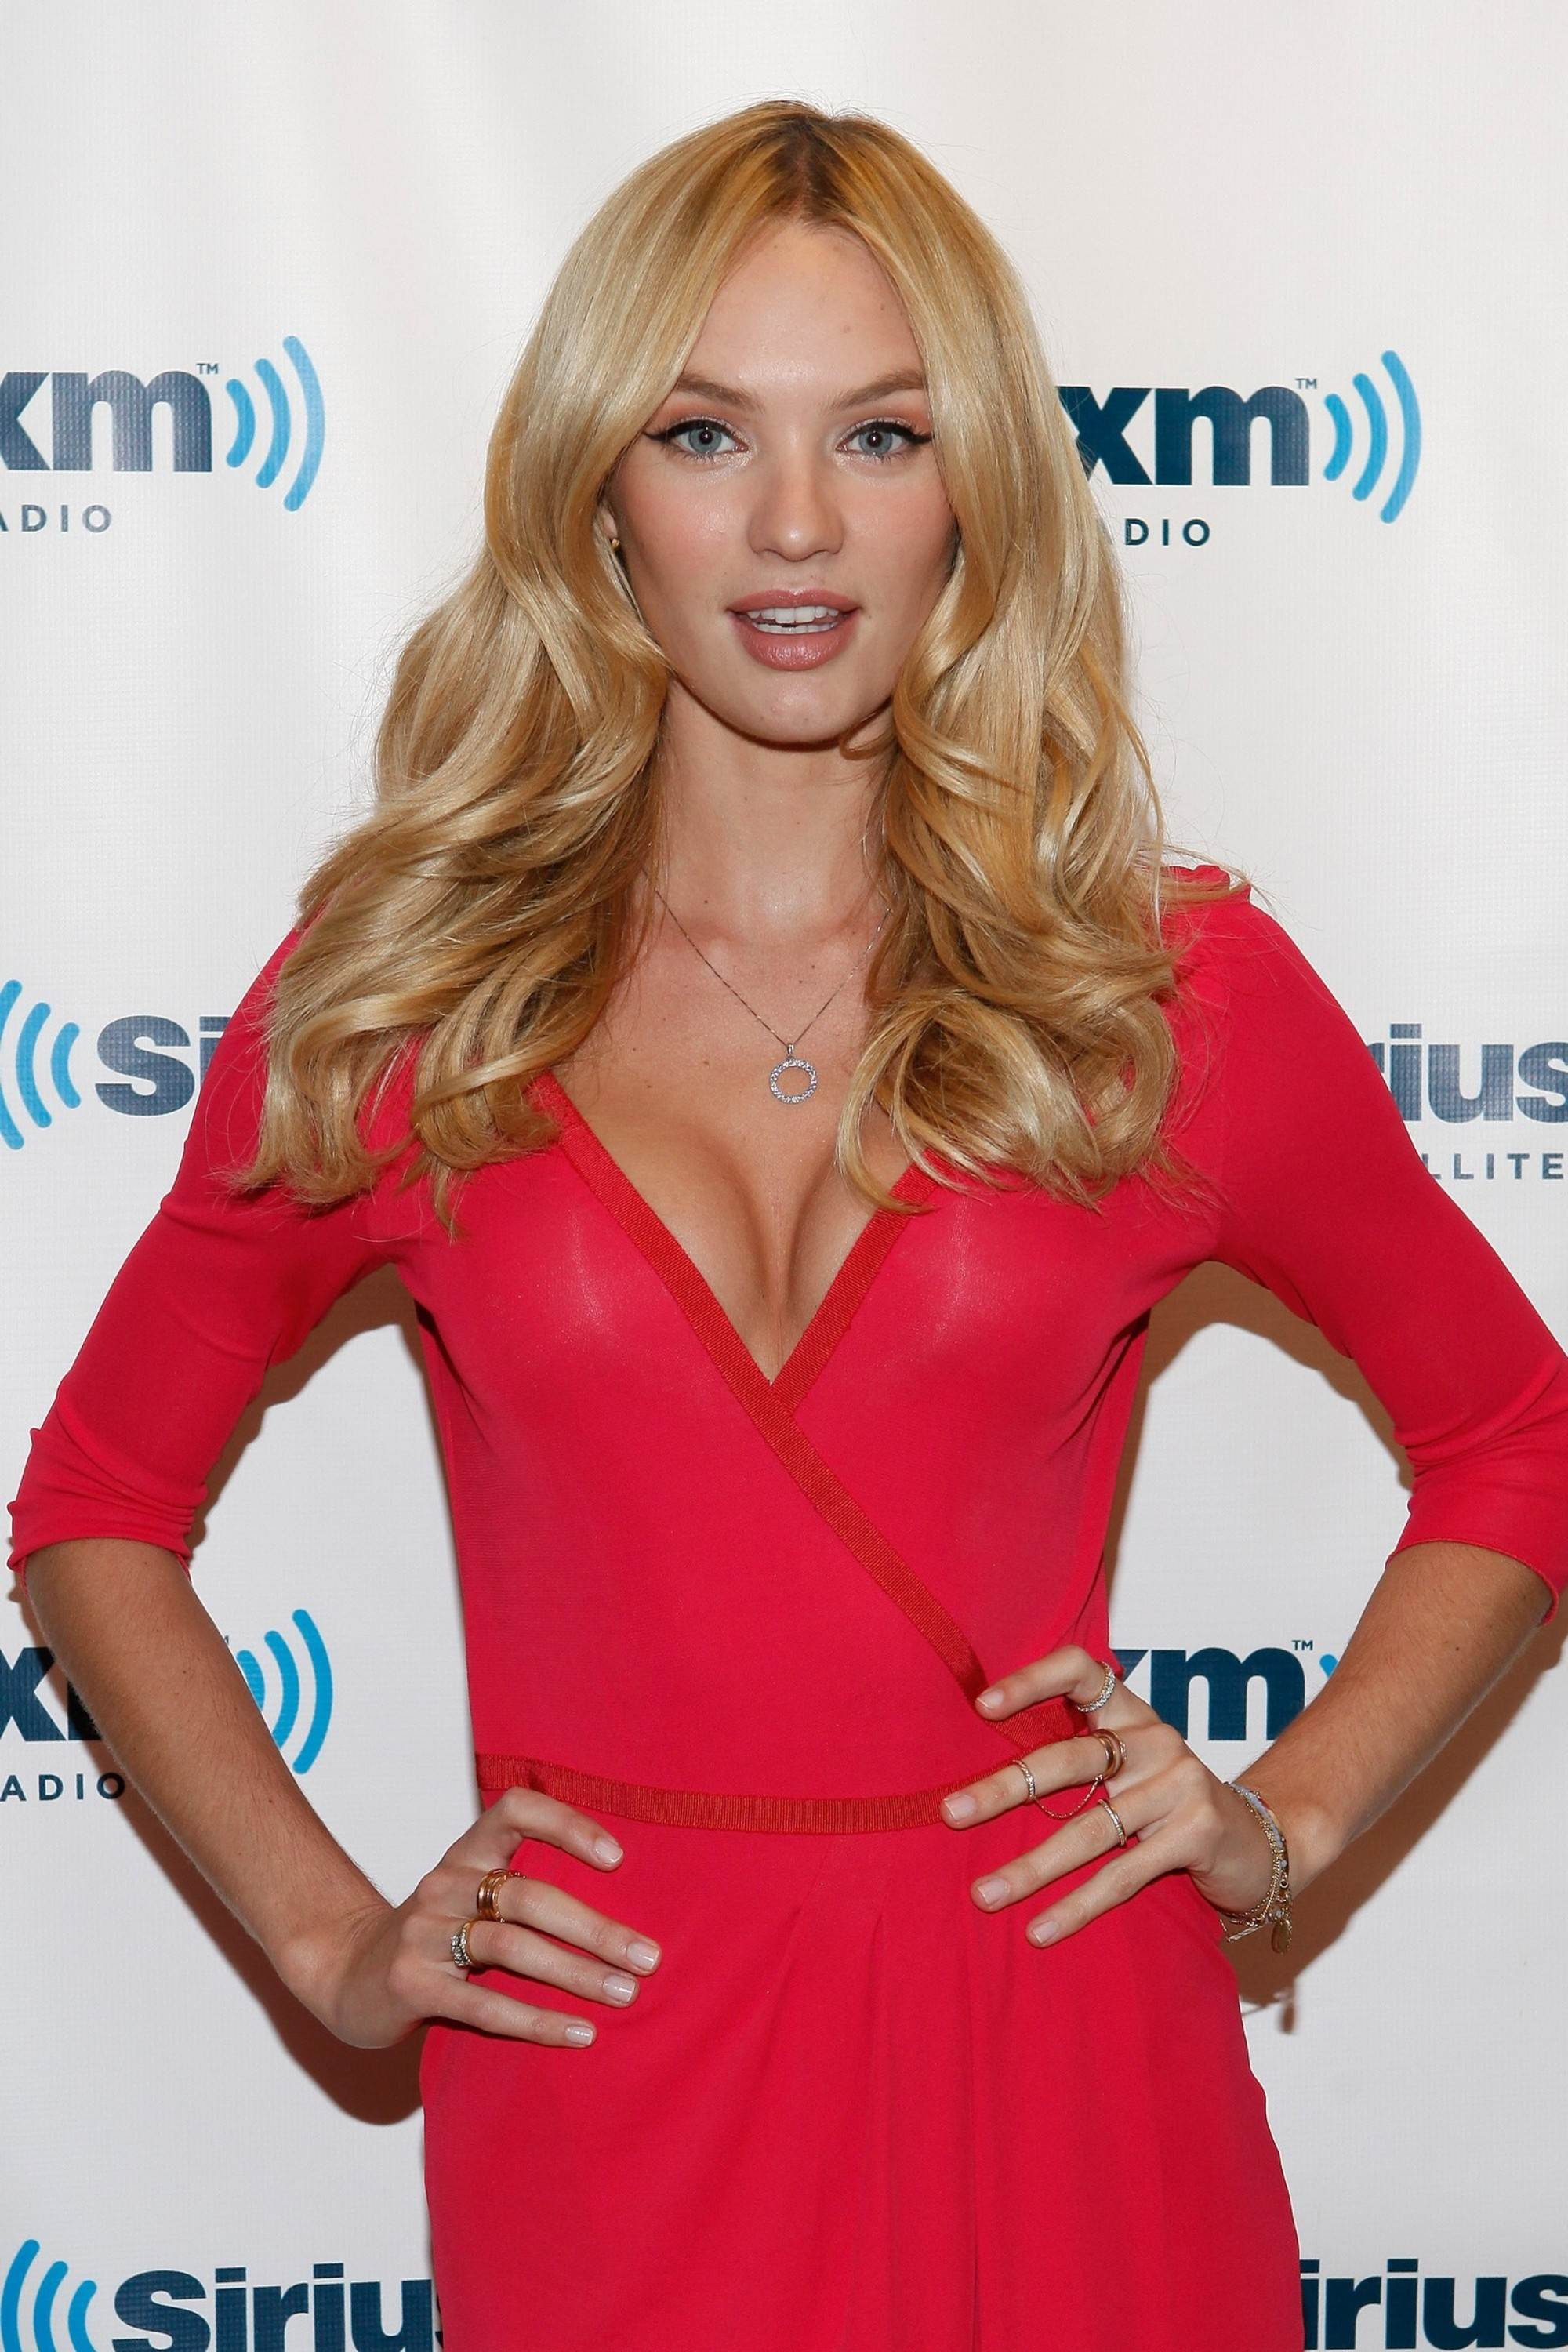 Candice Swanepoel Hot In Red Dress At Sirius Xm Studios